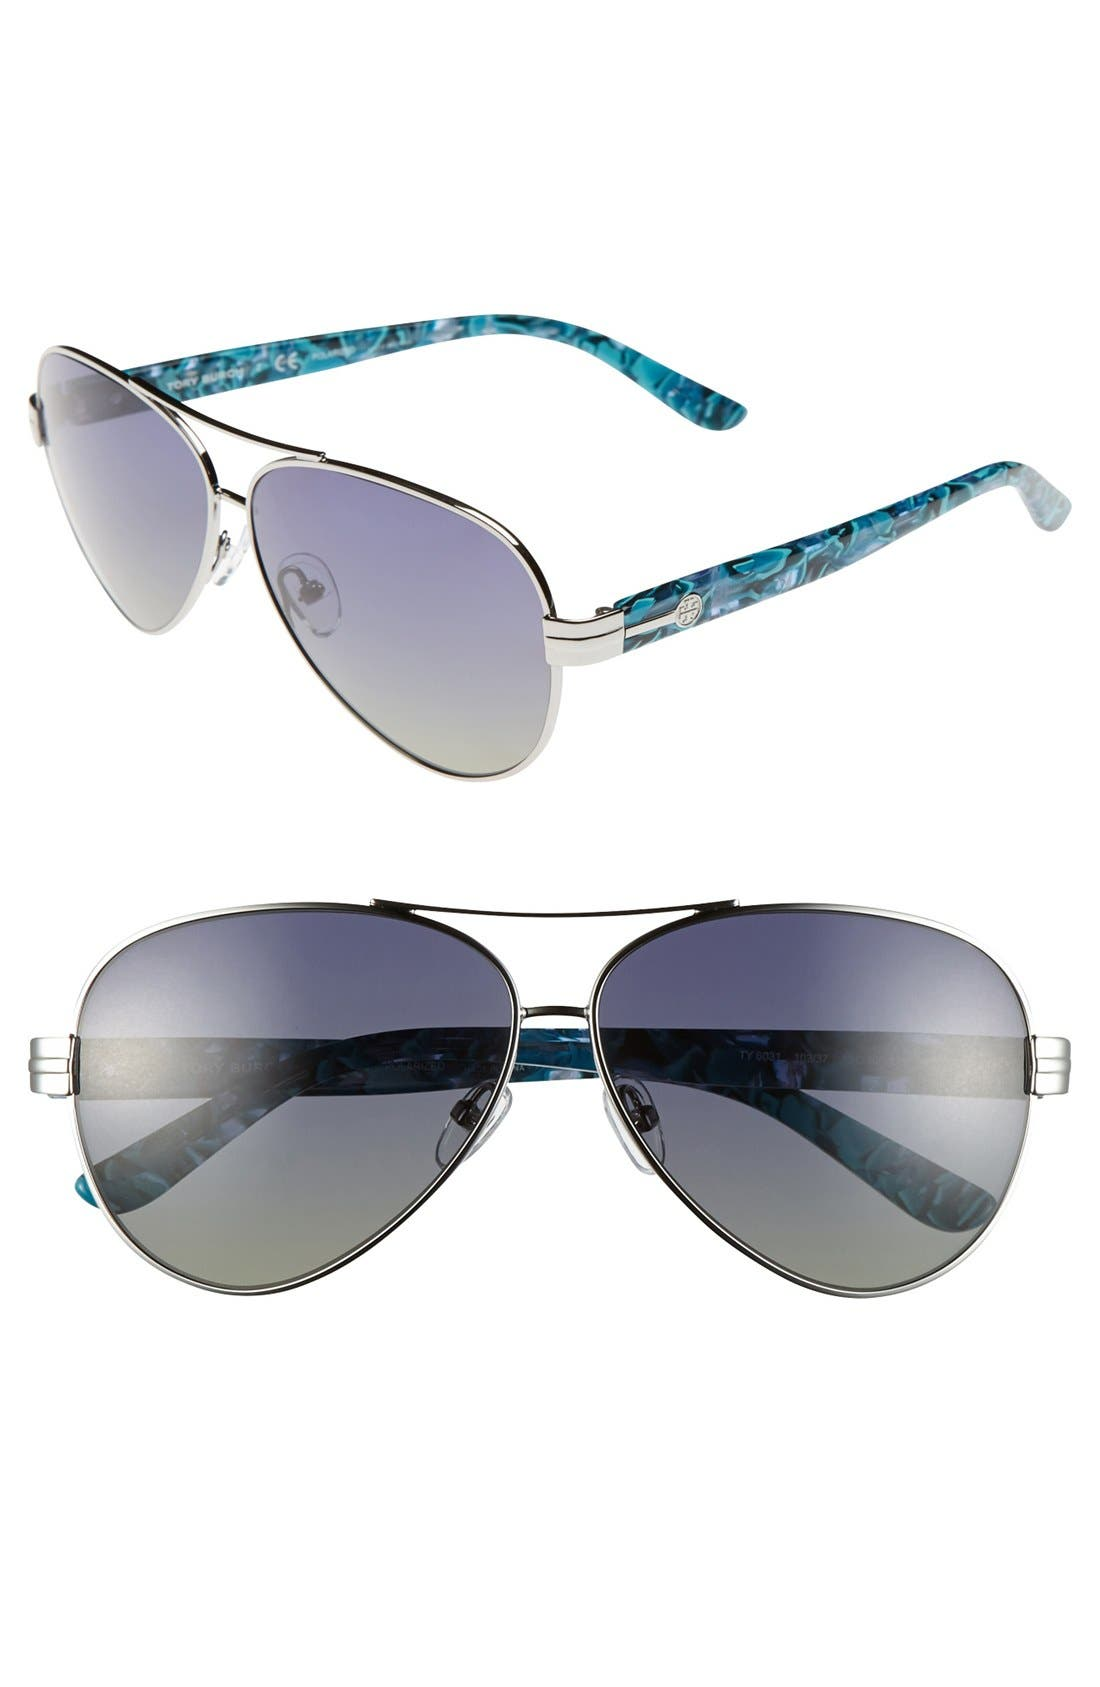 Main Image - Tory Burch 59mm Polarized Aviator Sunglasses (Online Only)